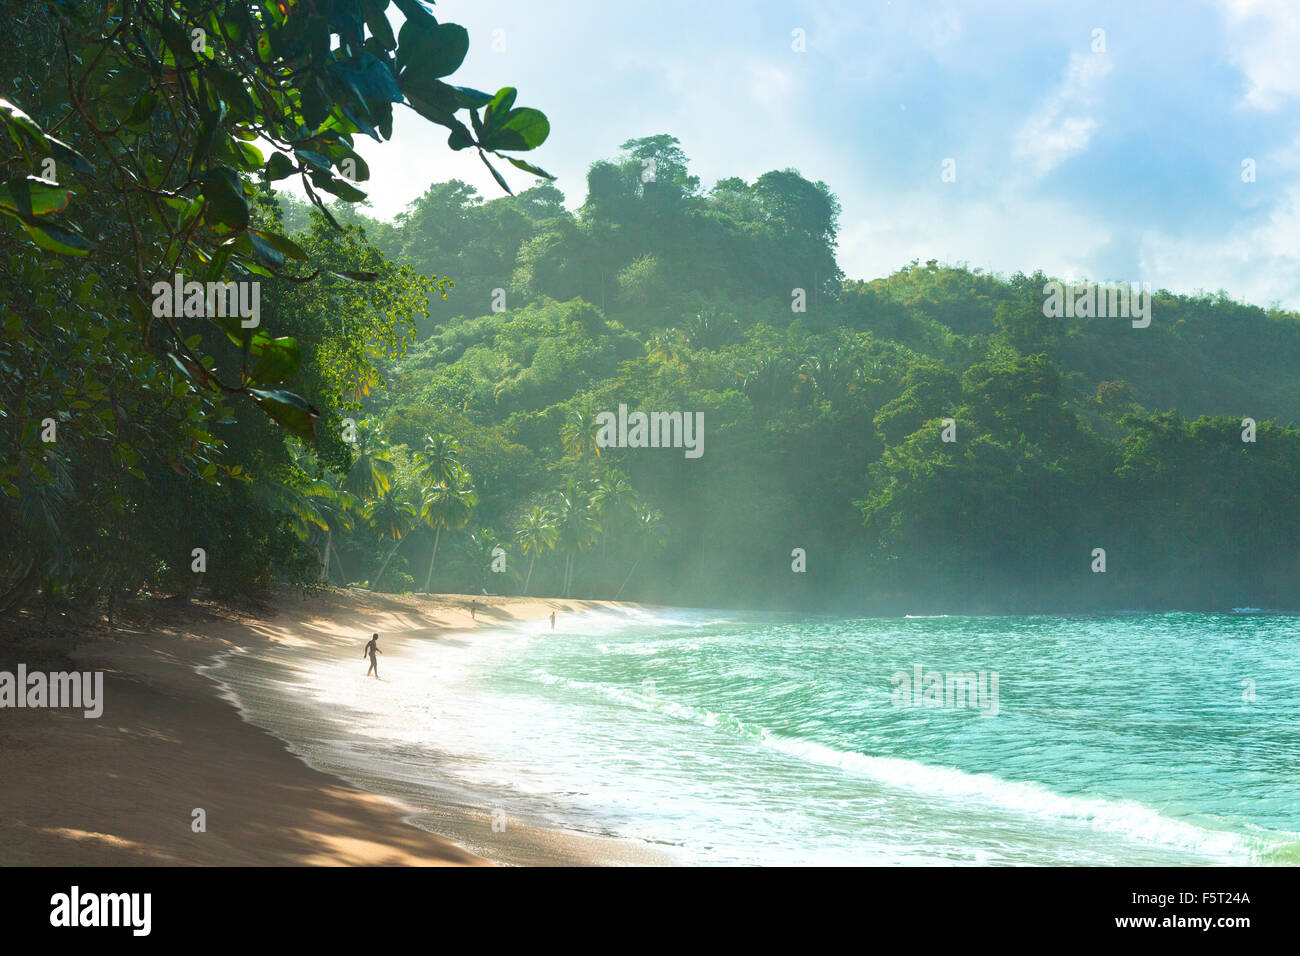 Trinidad and Tobago, Tobago, Englishman's Bay, Scenic view of sea coast - Stock Image